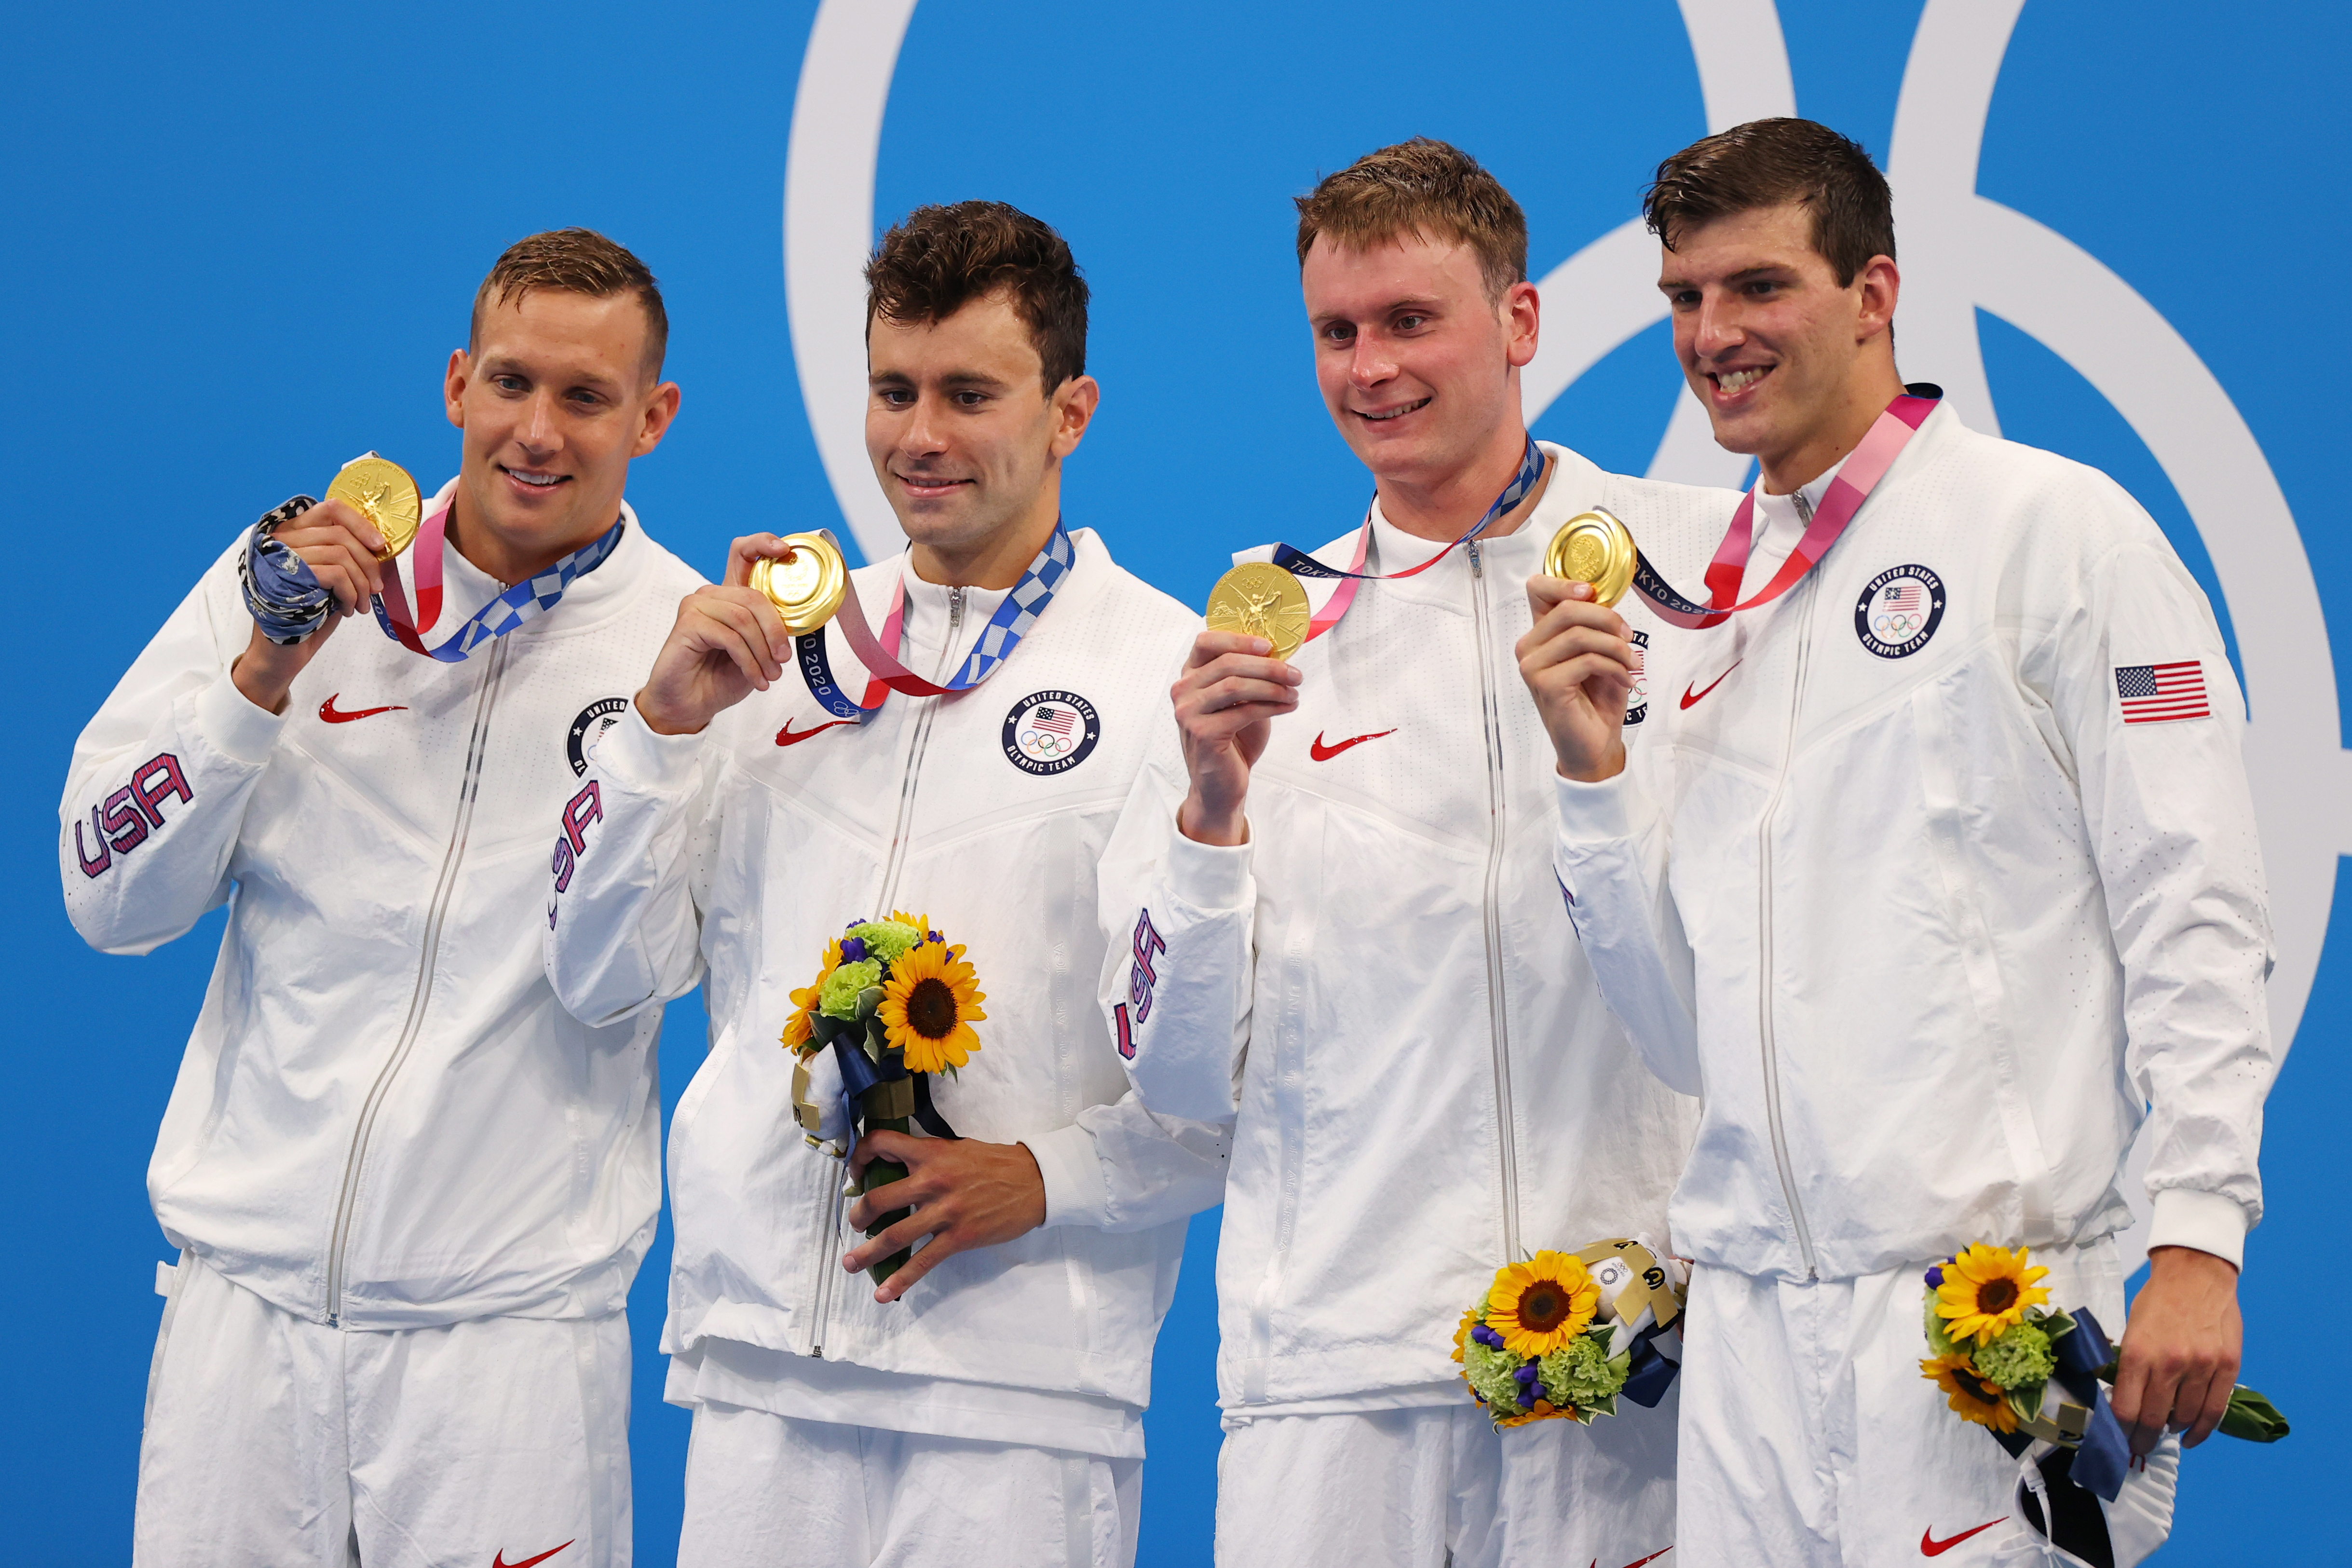 Tokyo 2020 Olympics - Swimming - Men's 4 x 100m Freestyle Relay - Medal Ceremony - Tokyo Aquatics Centre - Tokyo, Japan - July 26, 2021.  Caeleb Dressel of the United States, Blake Pieroni of the United States, Bowen Becker of the United States and Zach Apple of the United States pose with their gold medals. REUTERS/Marko Djurica